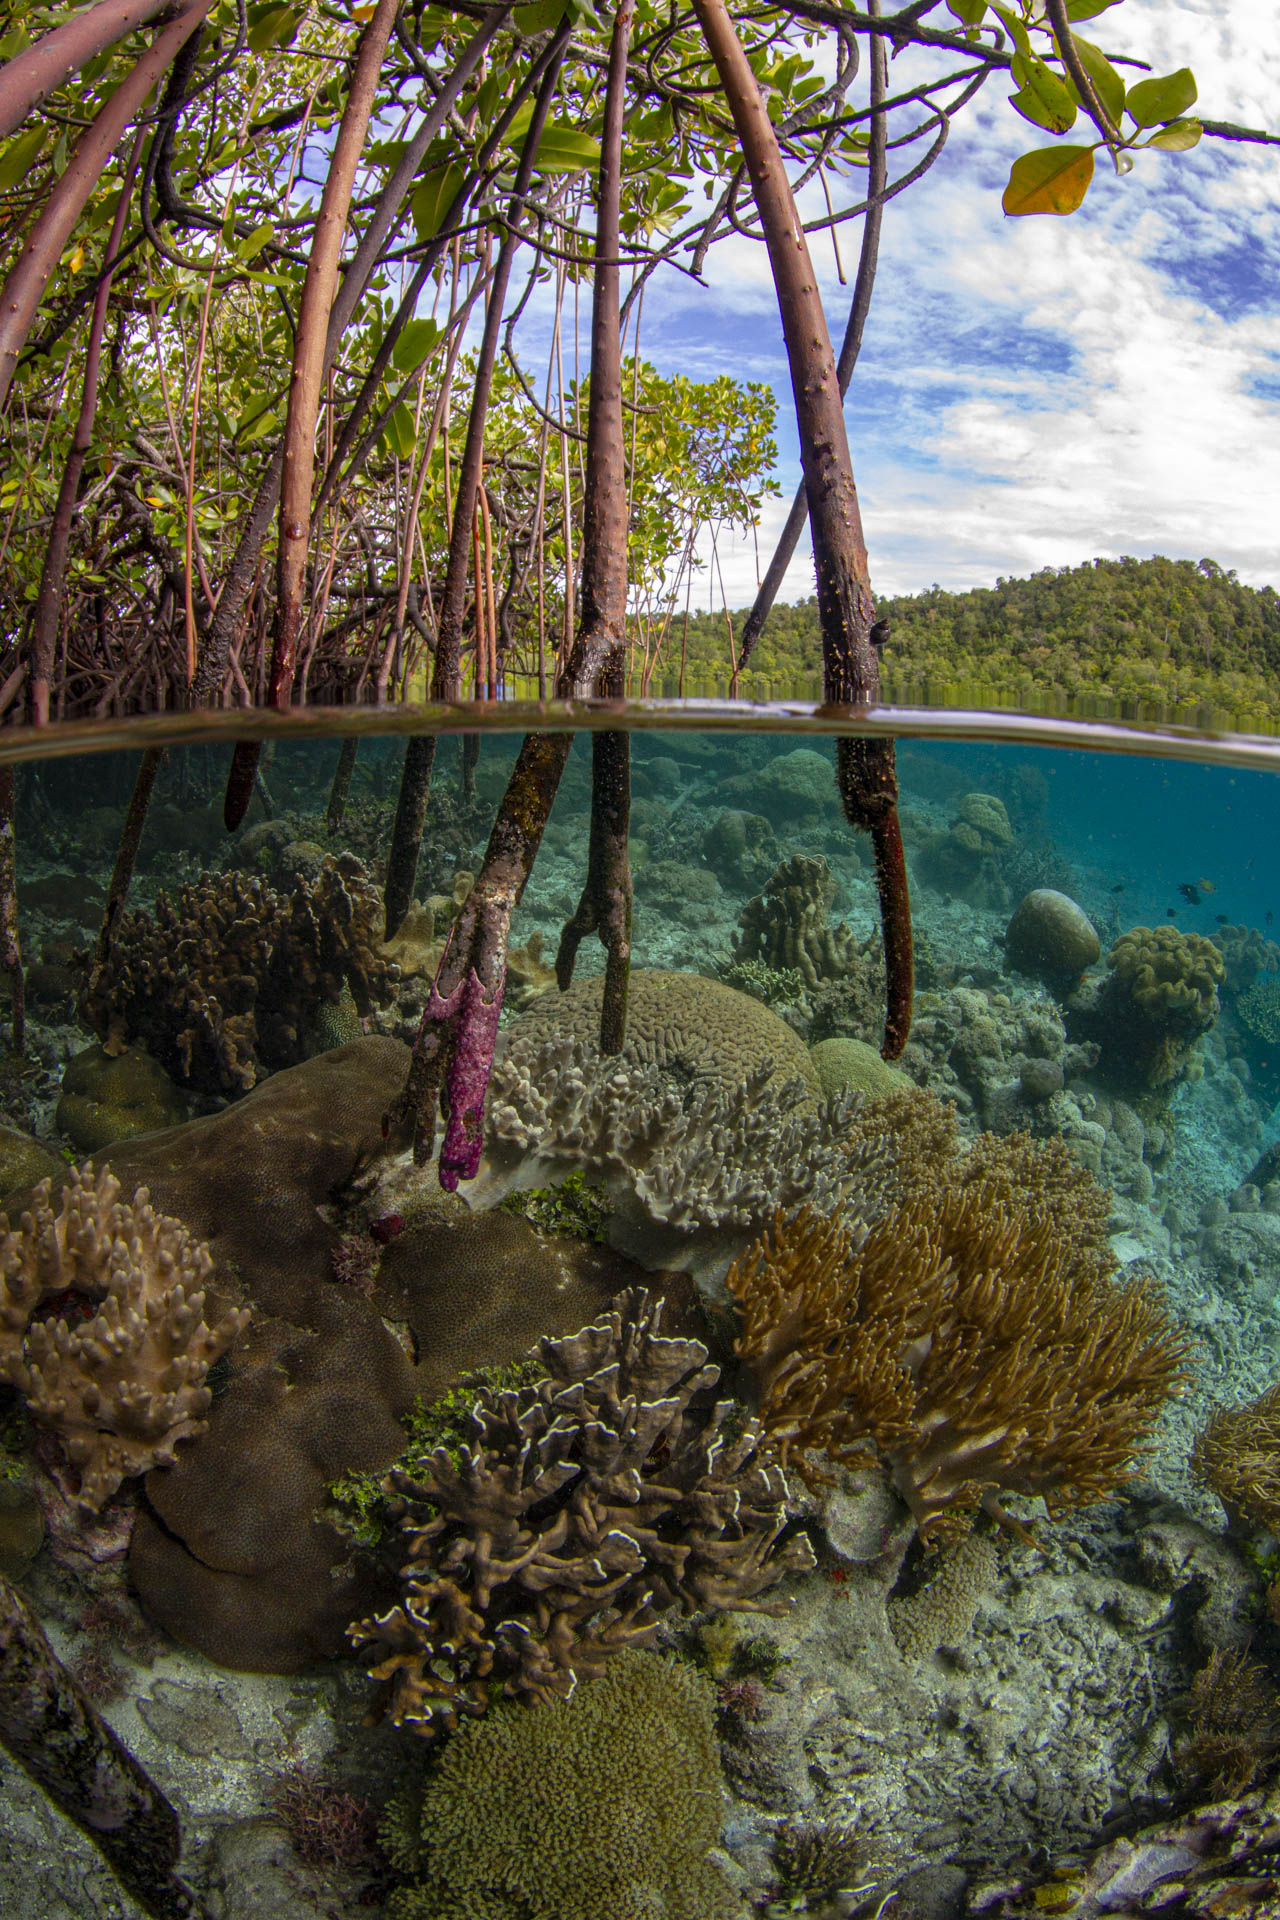 Mangrove scene with coral reef below